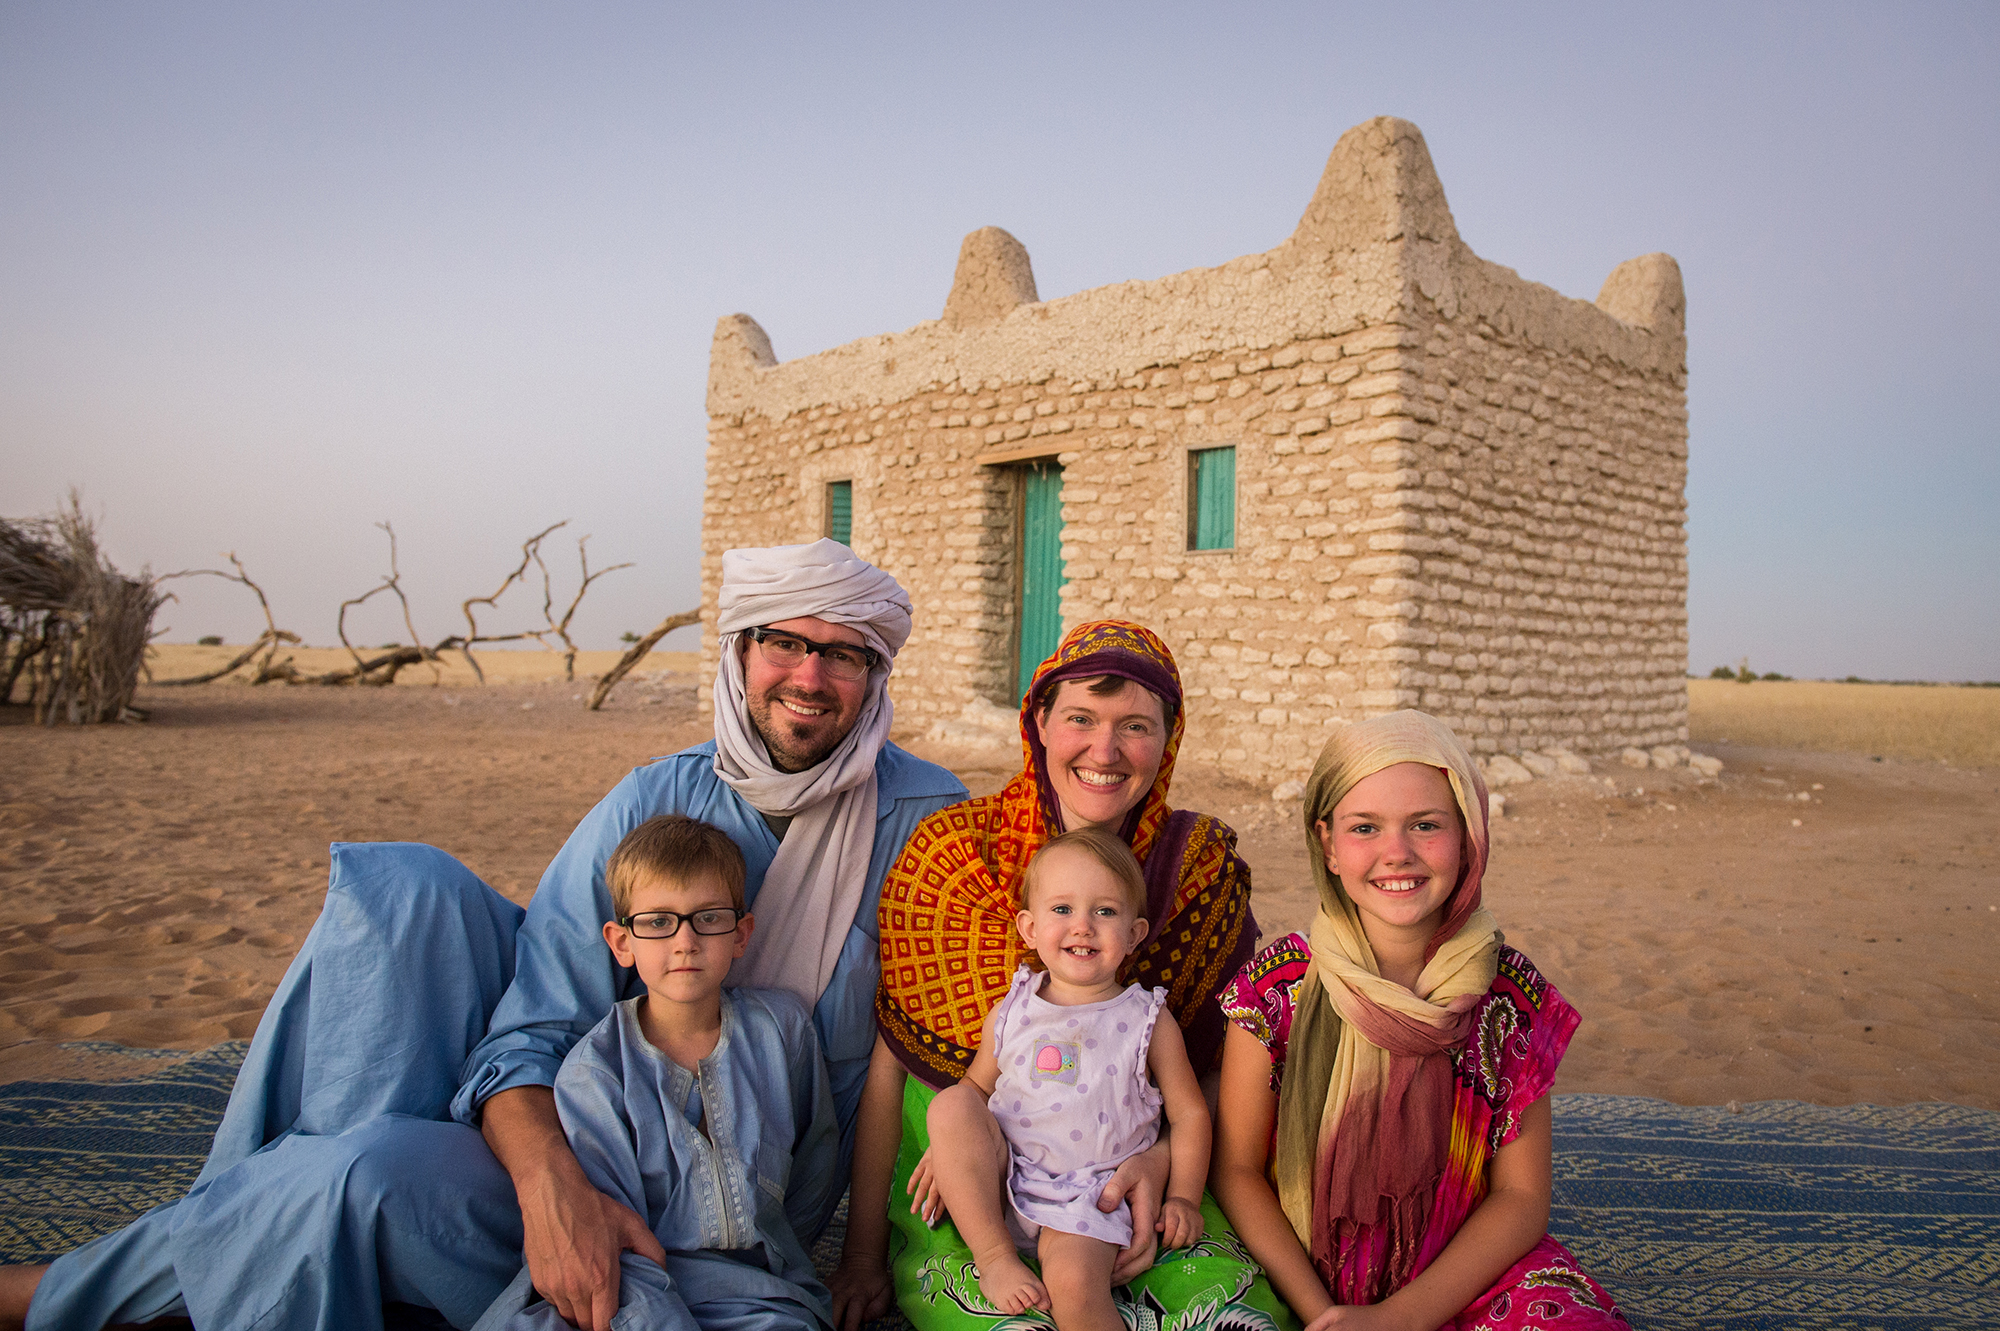 My family and I spent the month of December in Chad working on creating children's books to help a nomadic desert tribe learn to read and write in their language. While we were in the village, 12 hours north of the capital city, N'Djamena, we stayed in this one-room mud brick home. It was a wonderful experience for our family.